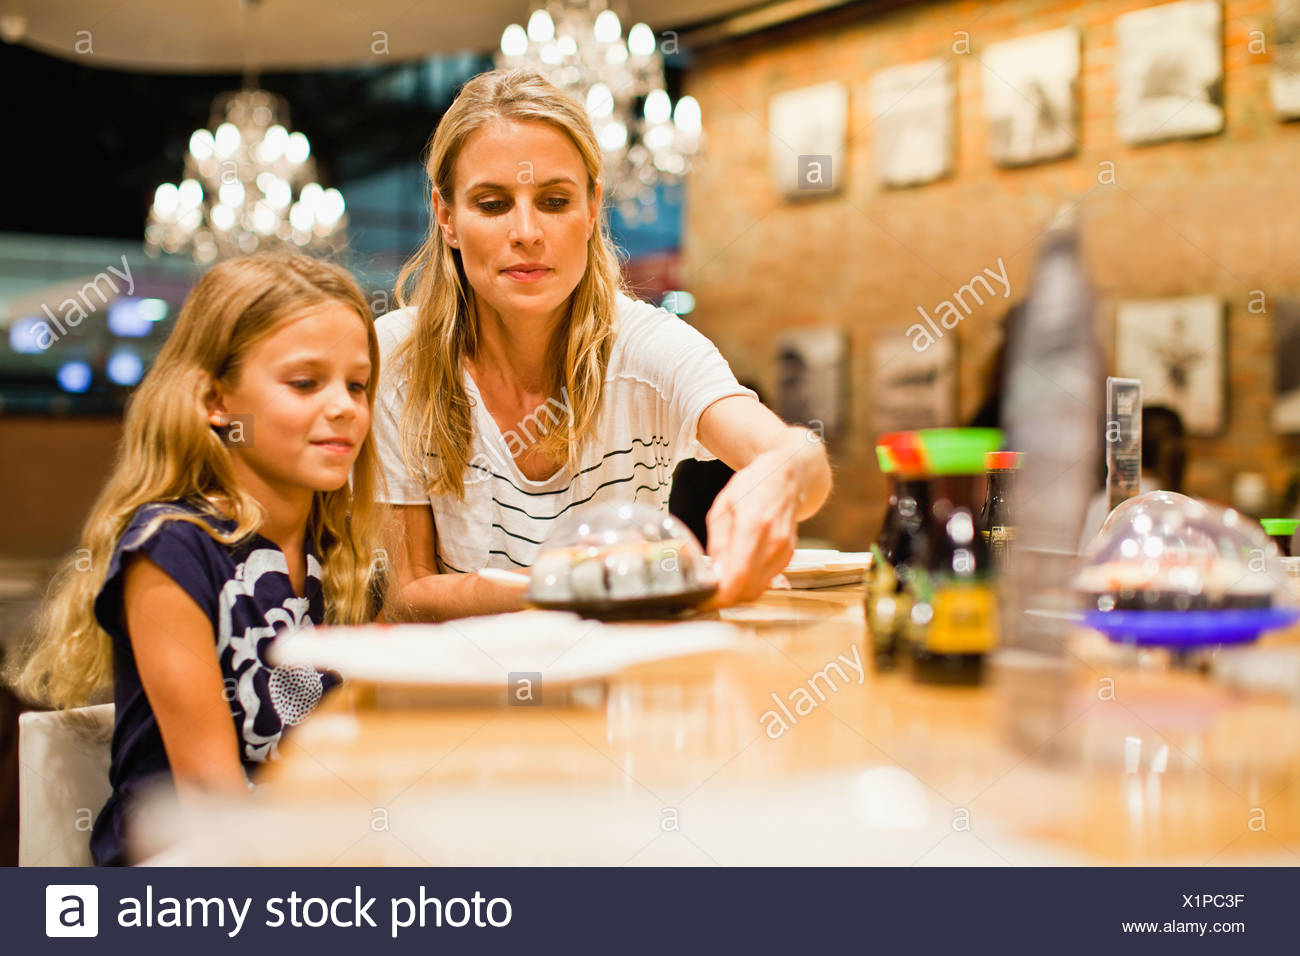 Mother and daughter eating at restaurant - Stock Image